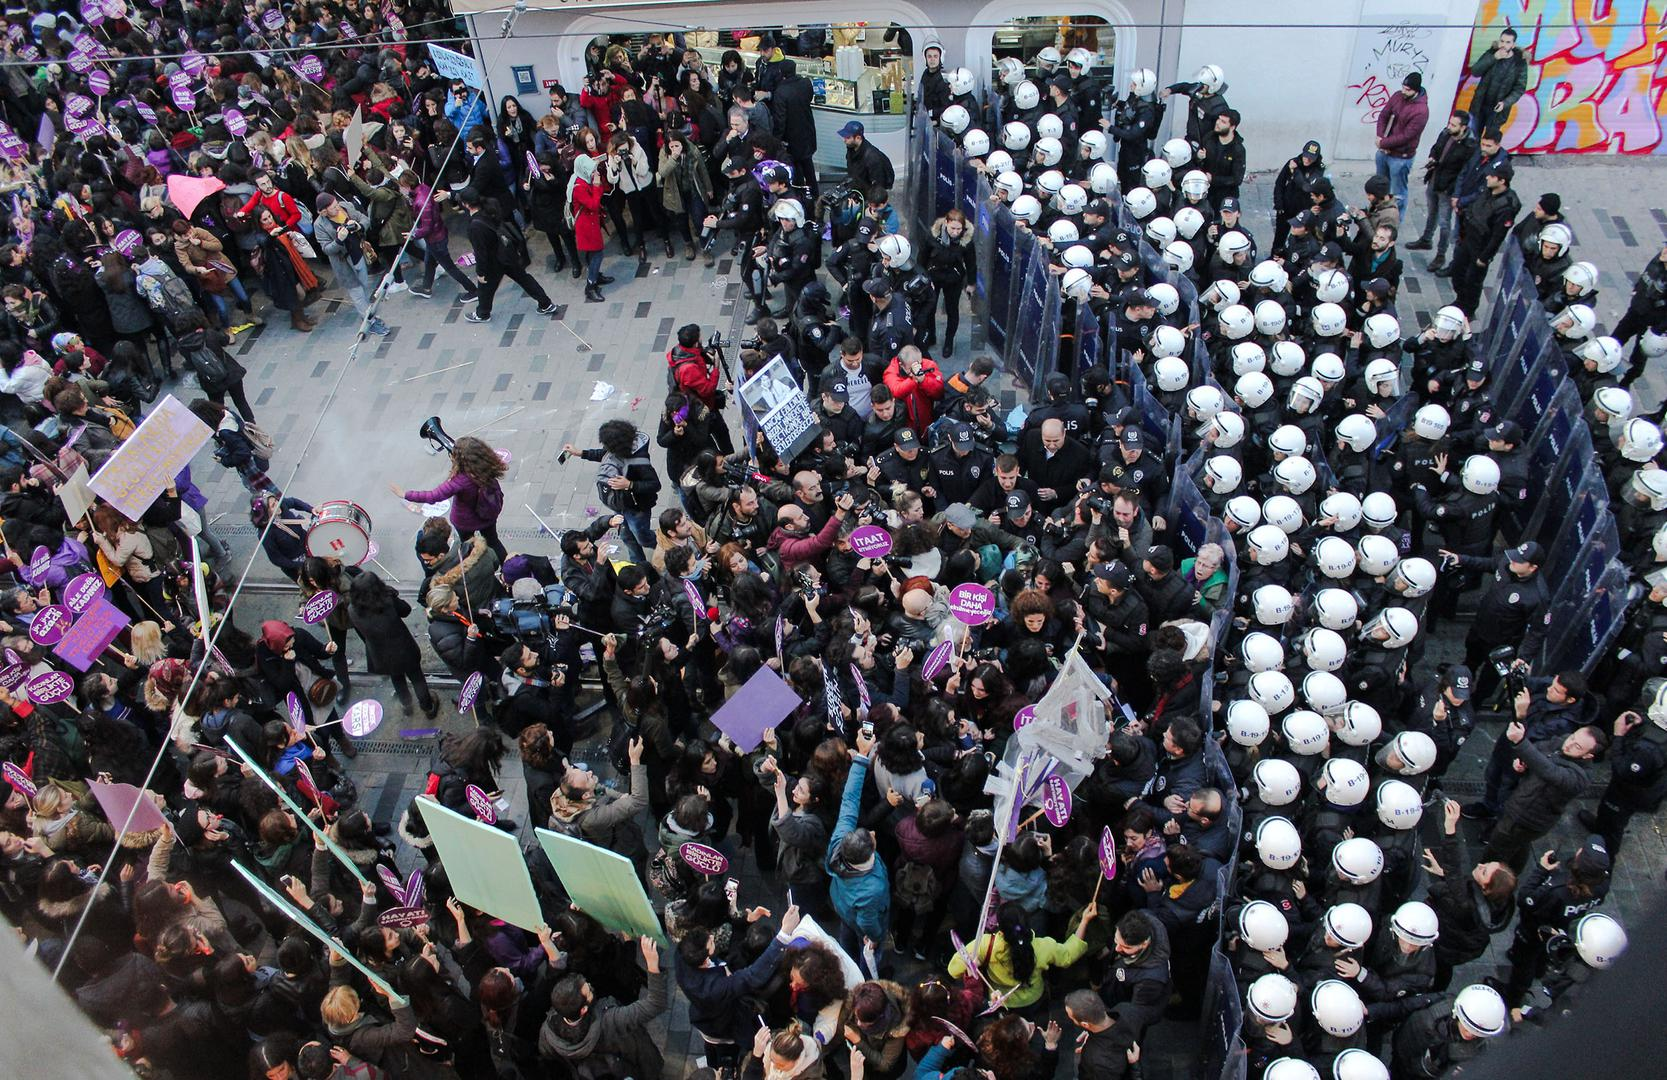 Women assembled in Istanbul on International Day for the Elimination of Violence against Women are blocked by police, November 25, 2018.